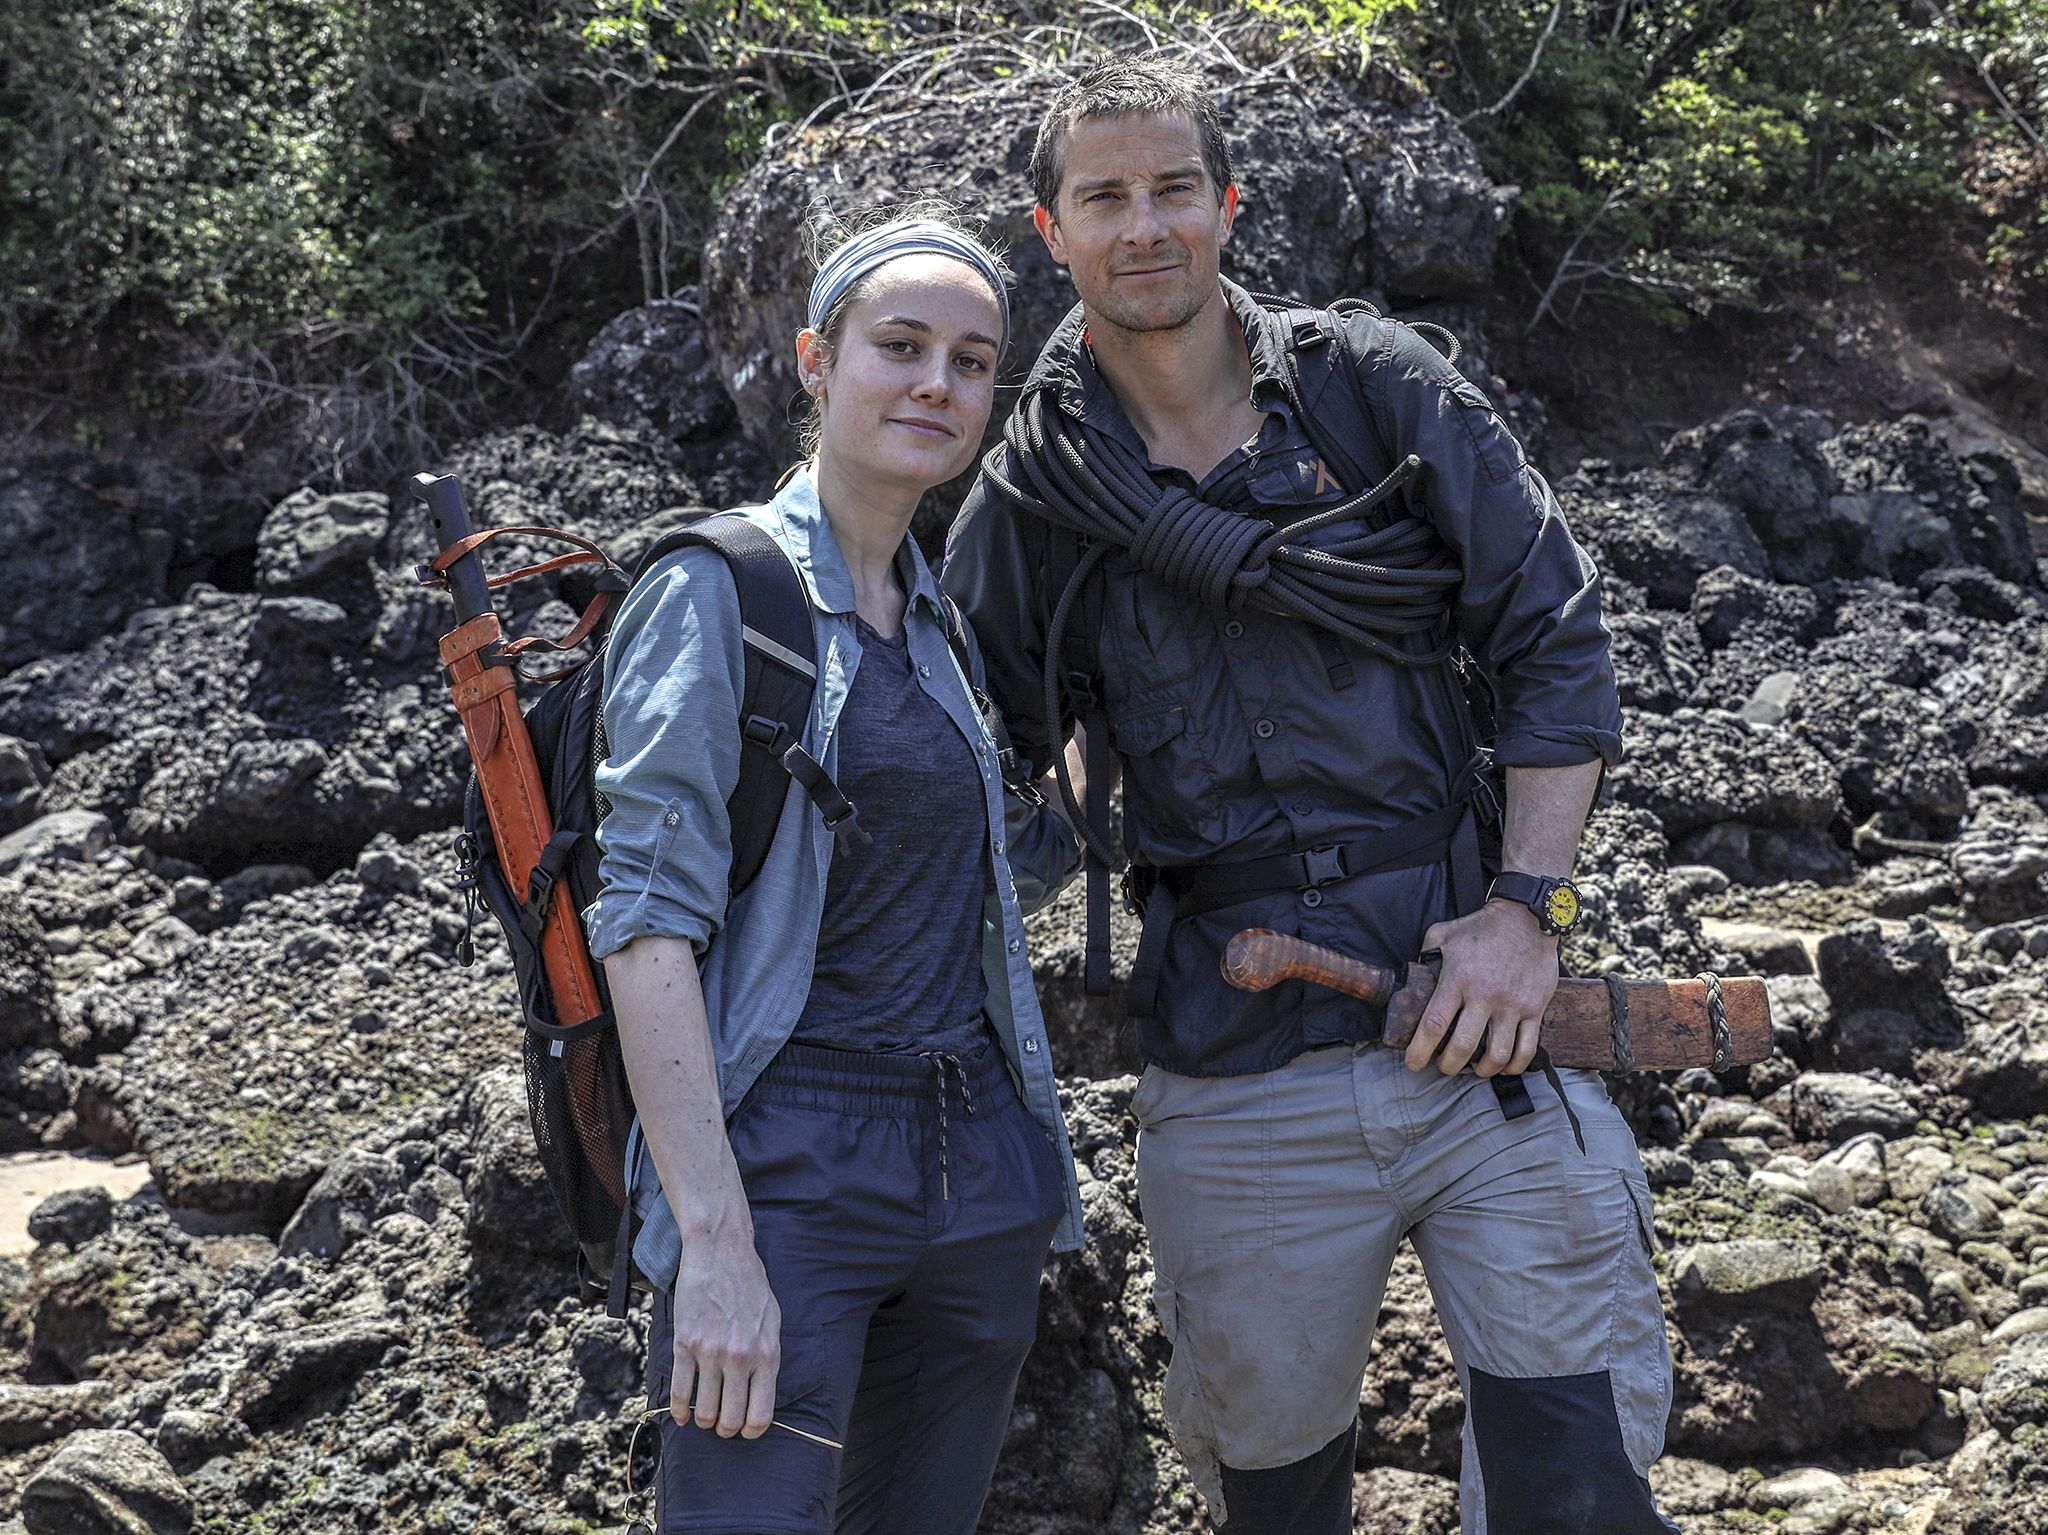 Panama: (L to R) Brie Larson and Bear Grylls on the shore of a remote Pearl Island in Panama.... [Photo of the day - November 2019]